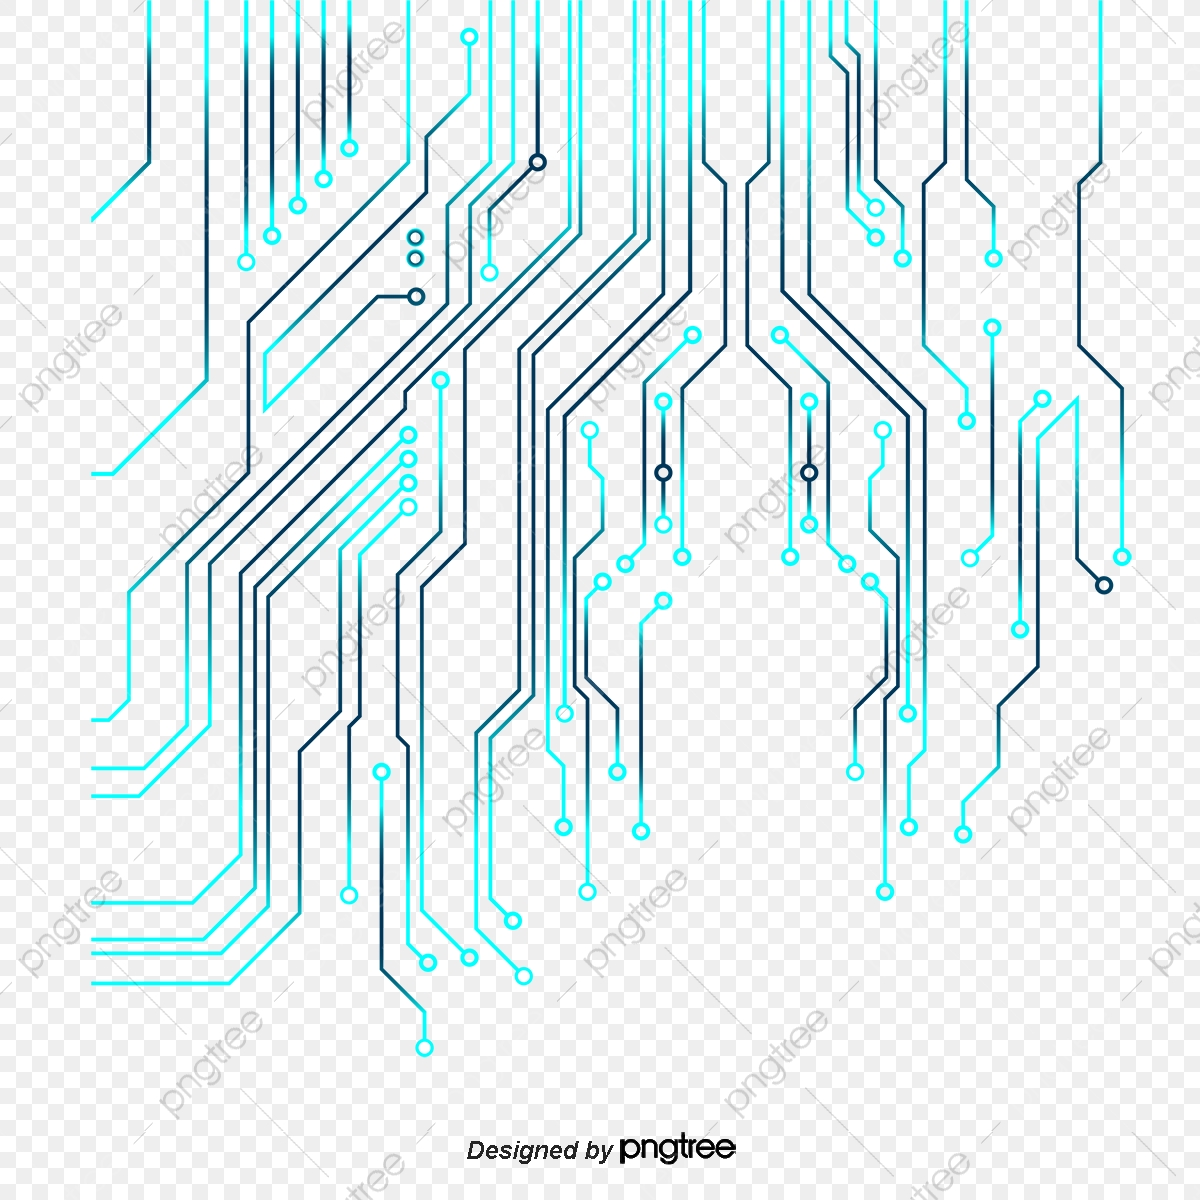 graphic free library Digital vector. Circuit board layer .